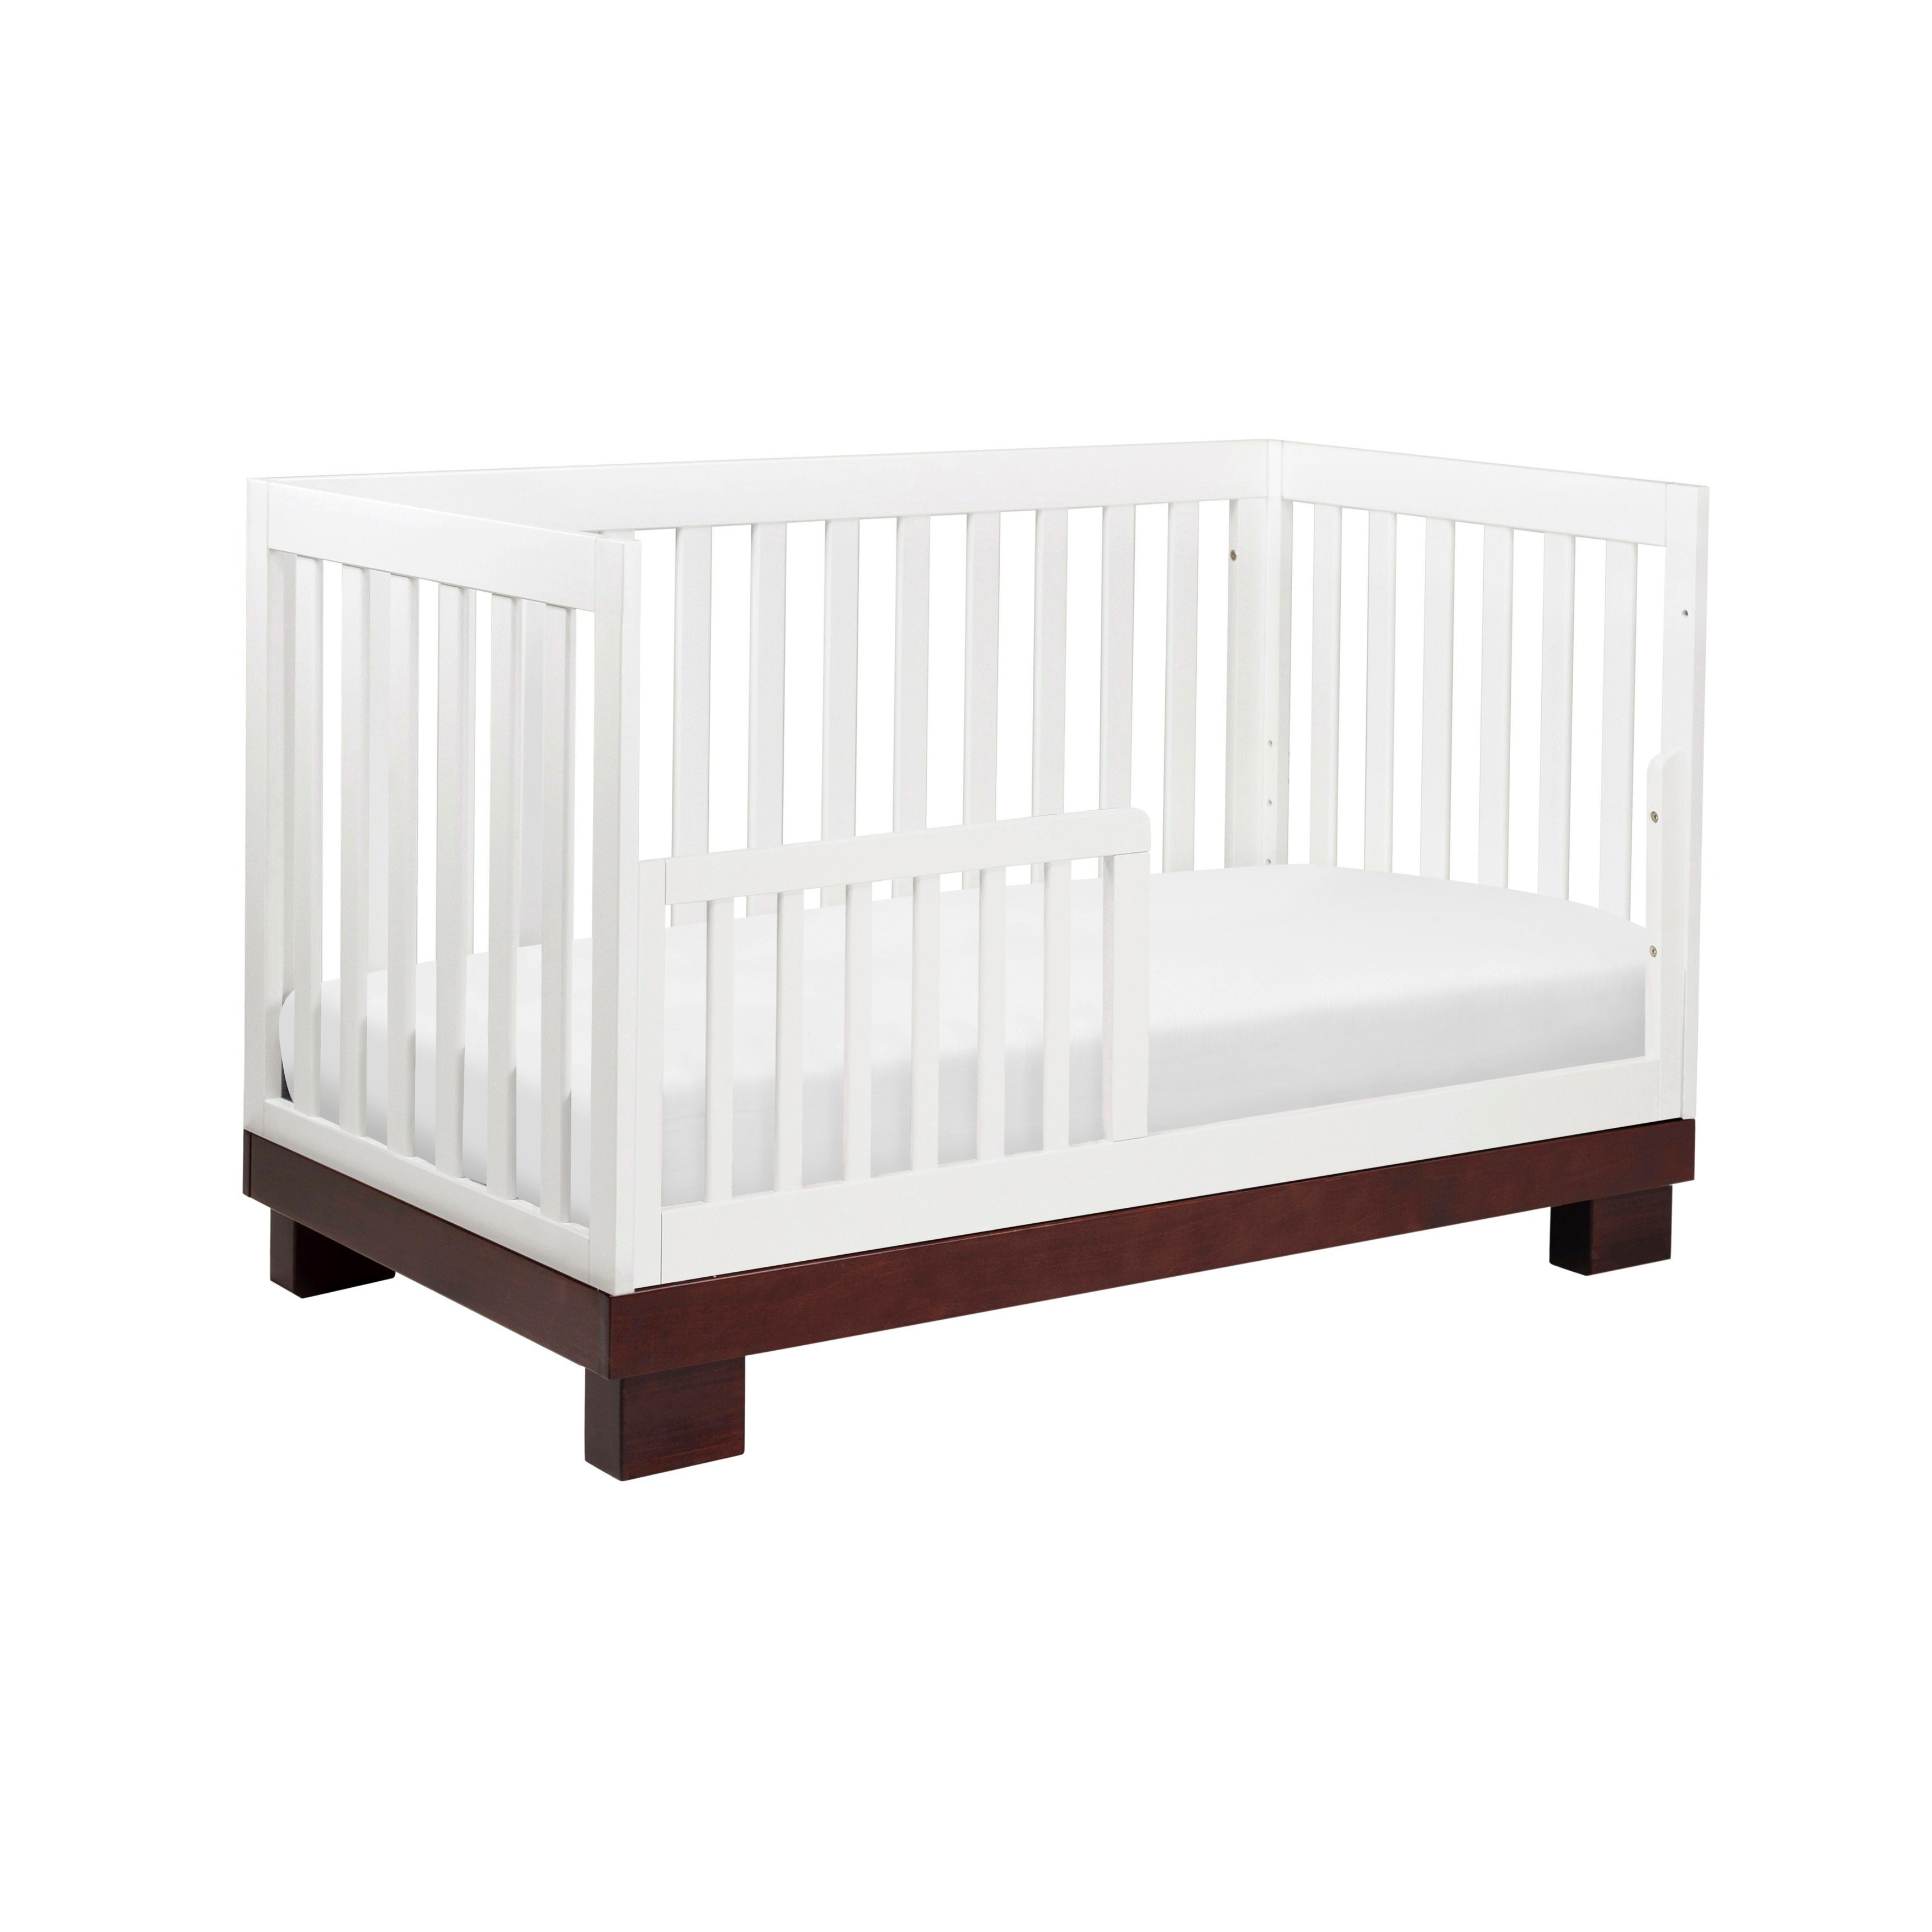 crib babies cr in babyletto convertible baby letto hudson swanky